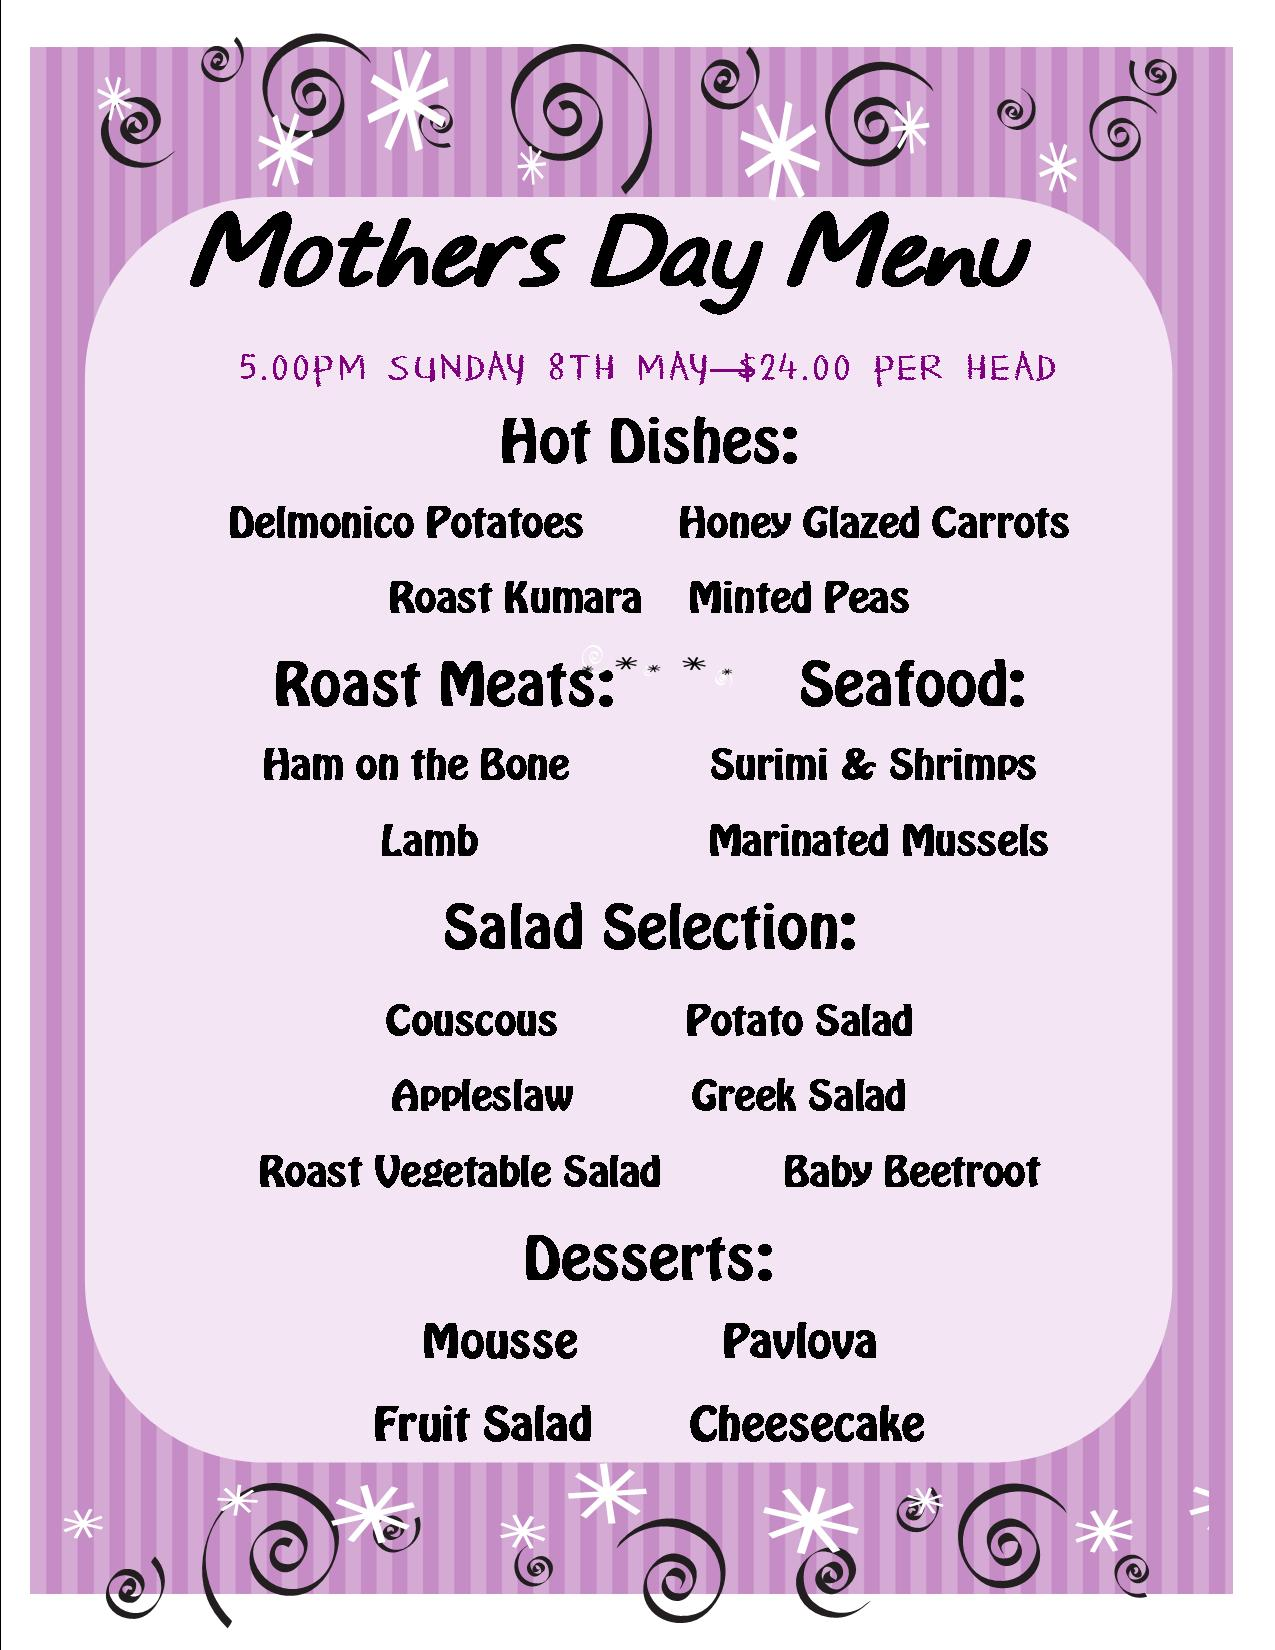 Mothers Day Menu 2016